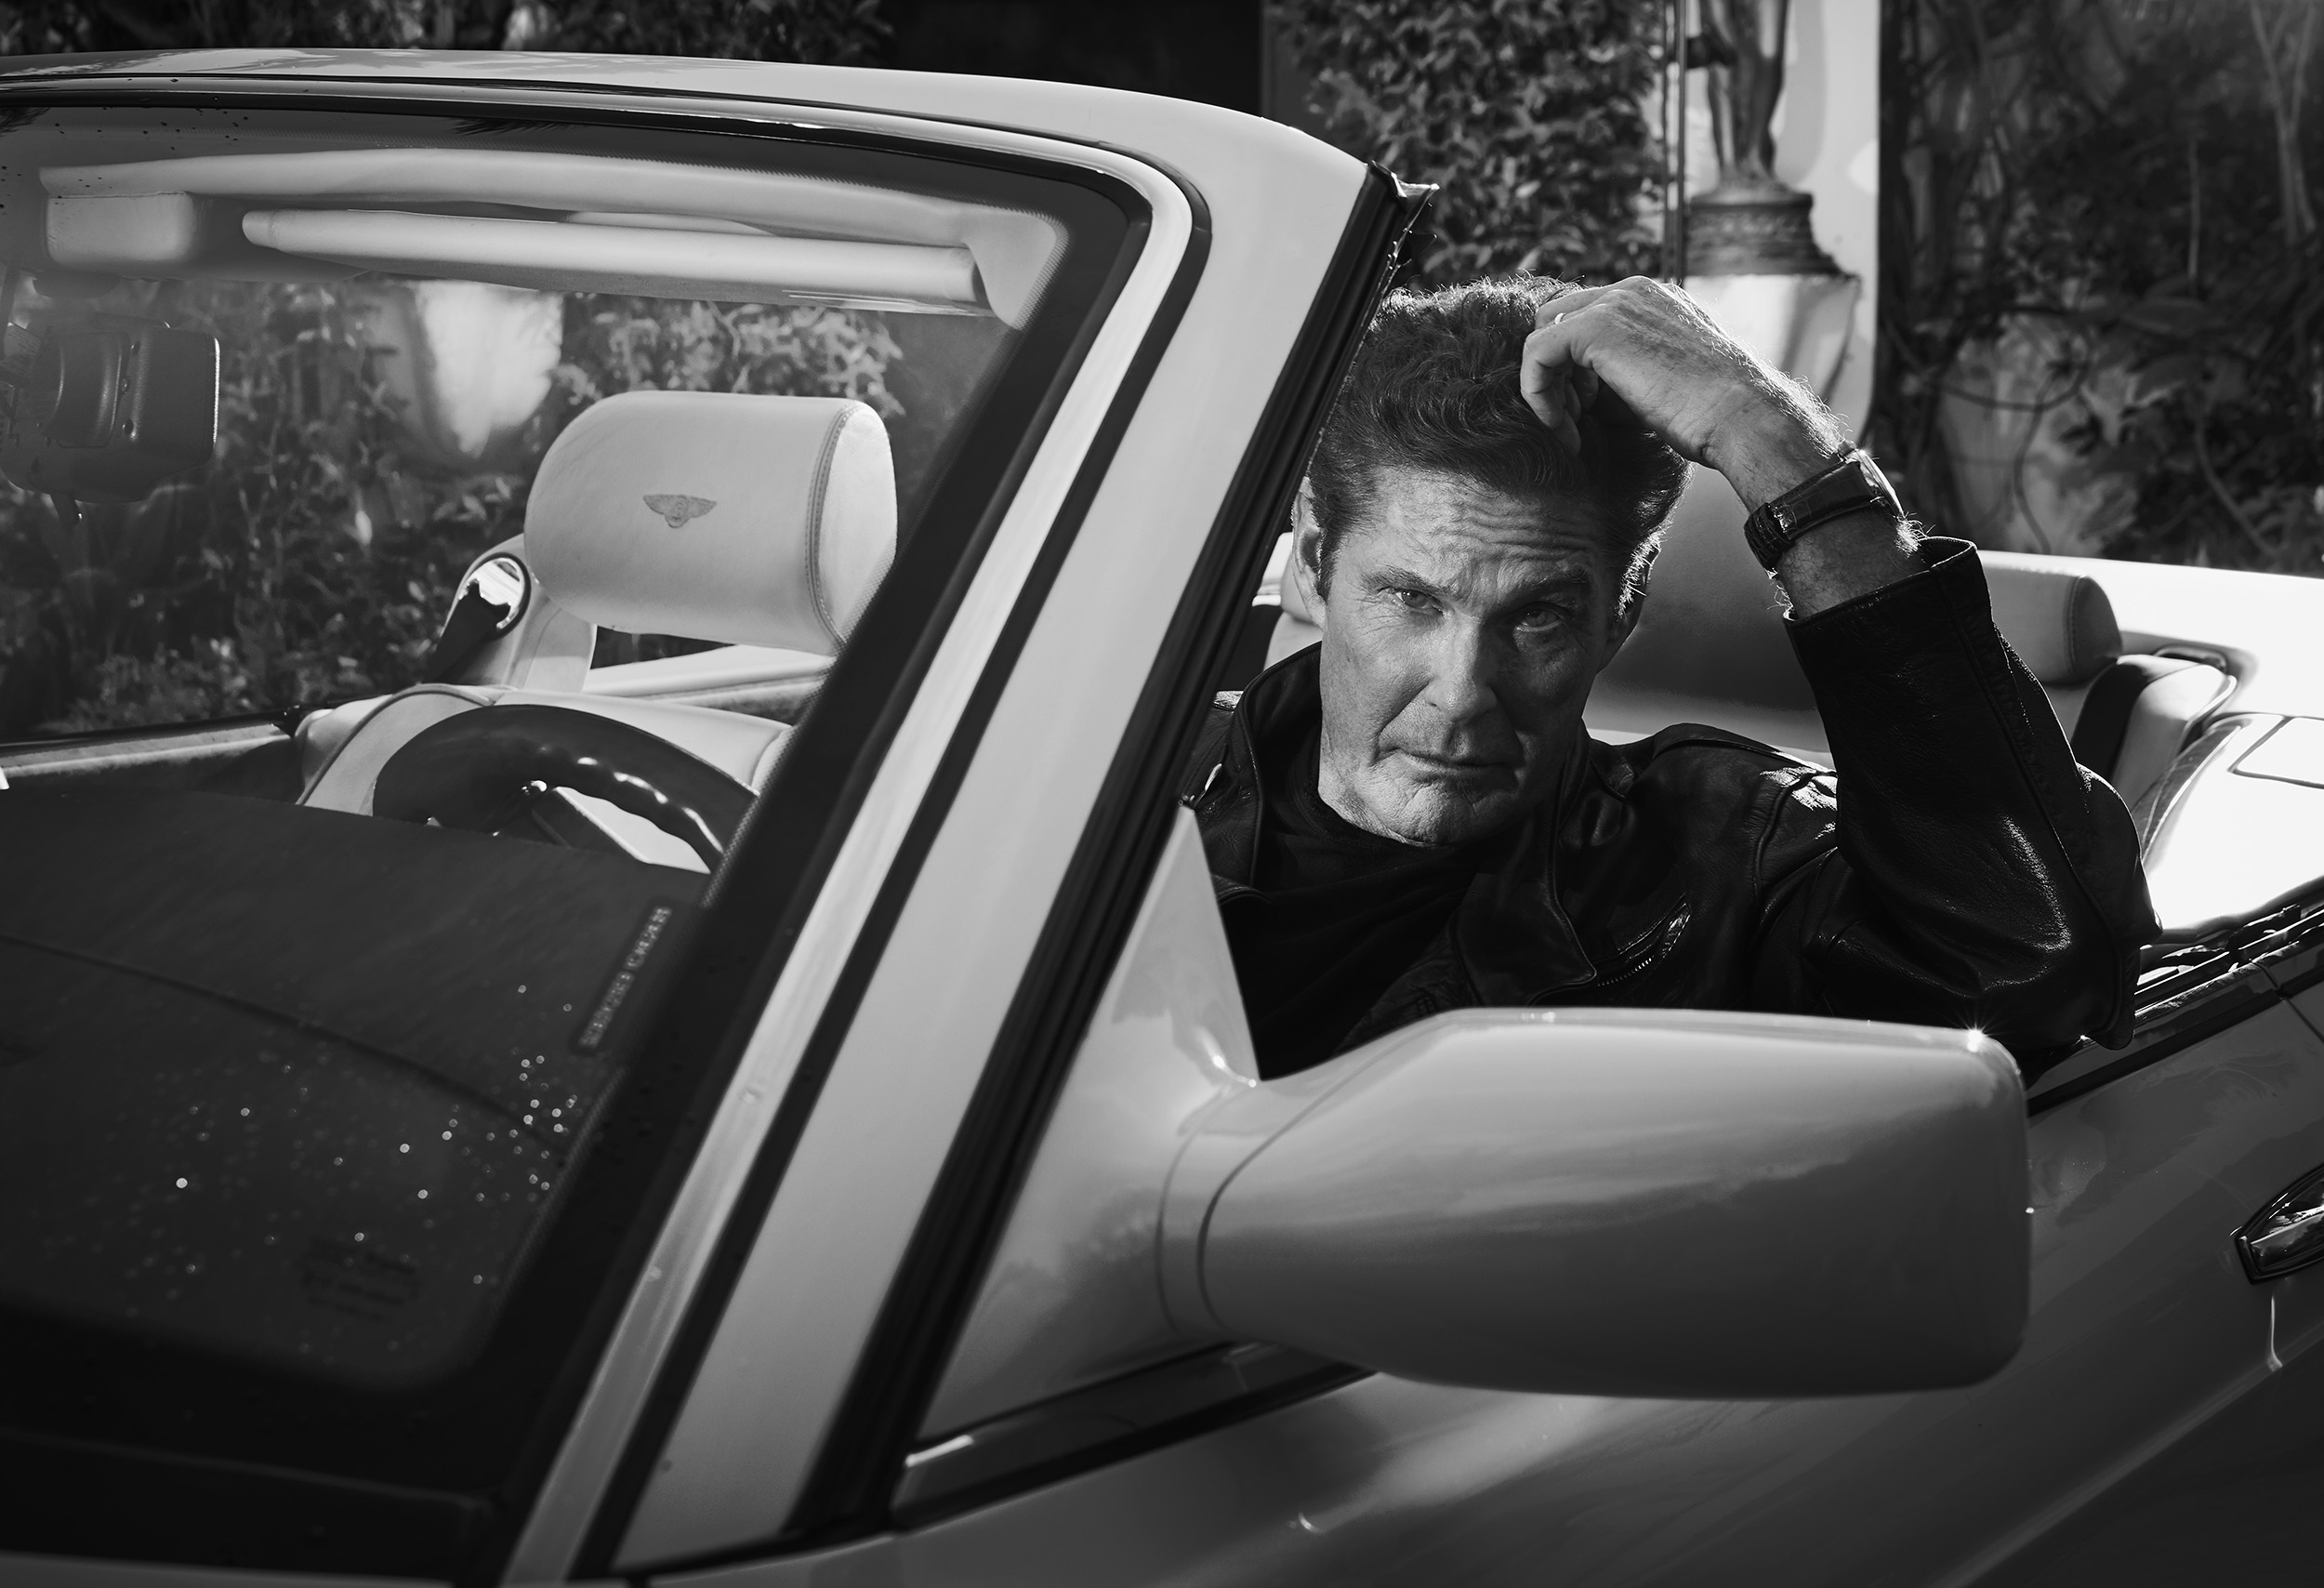 David-Hasselhoff-by-Robert-Ascroft